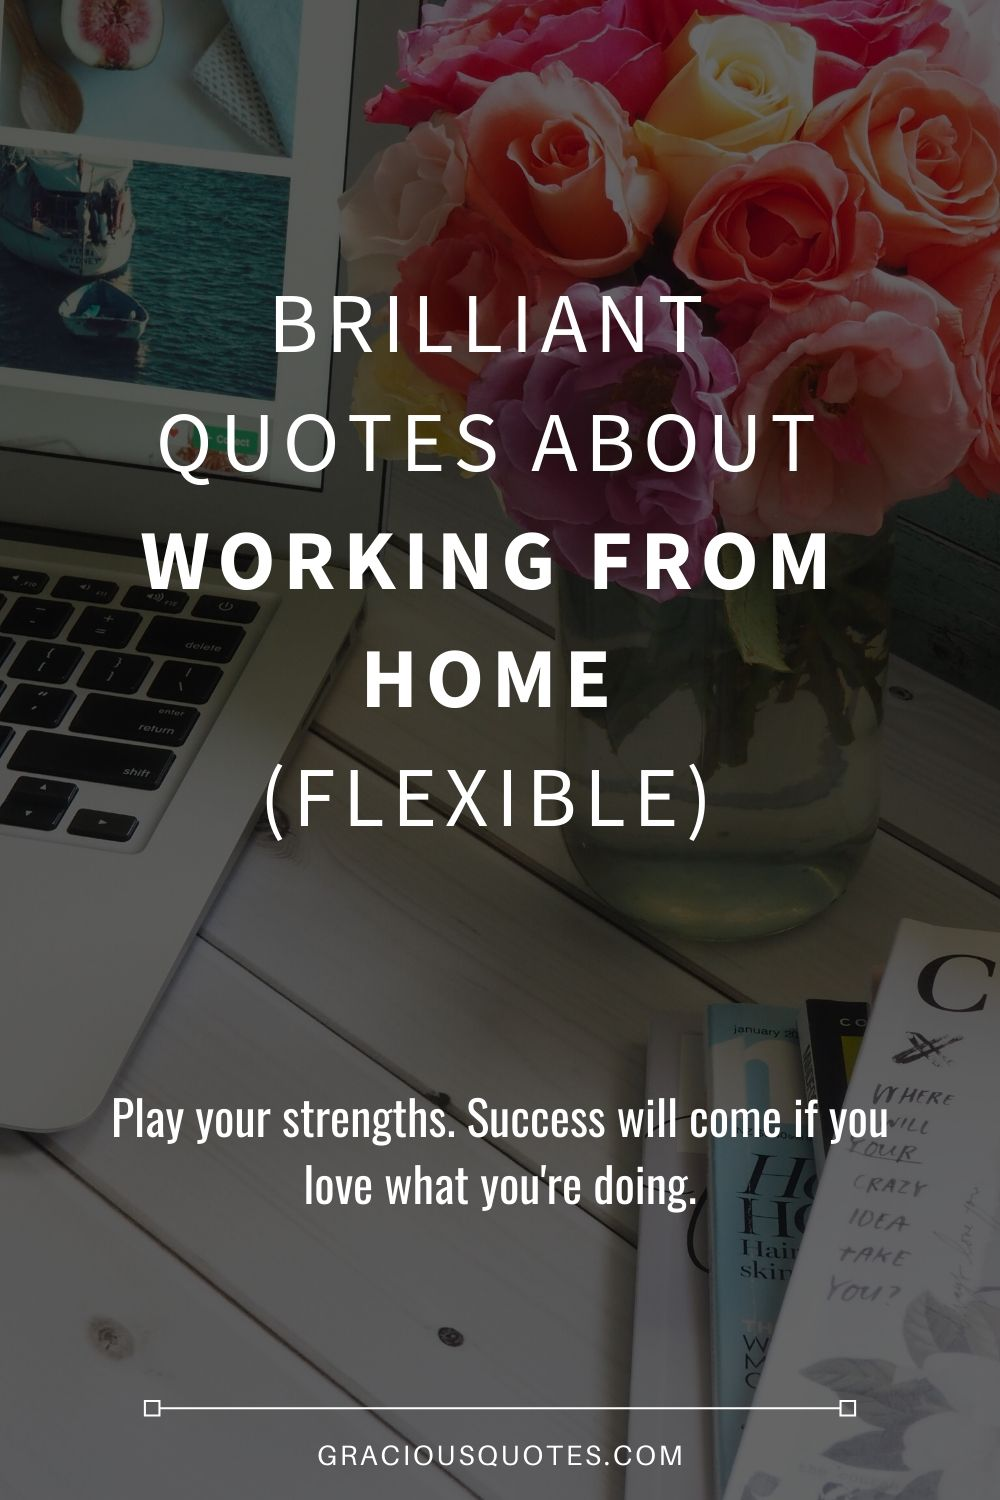 Brilliant-Quotes-About-Working-From-Home-FLEXIBLE-Gracious-Quotes